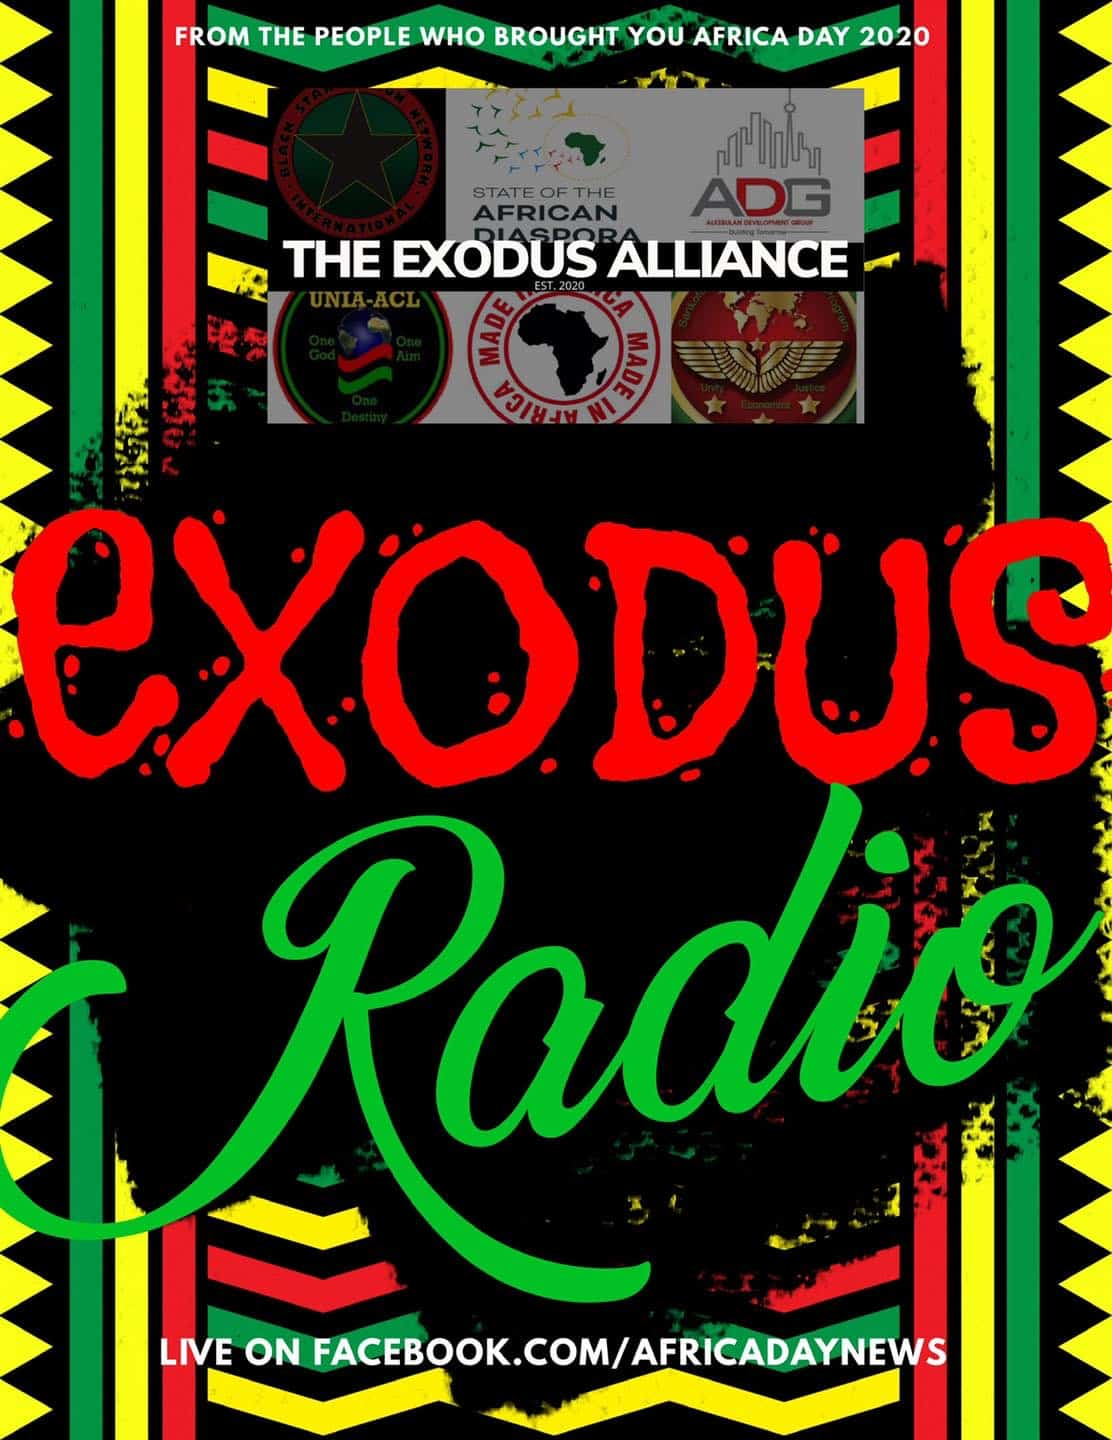 Introducing The Exodus Alliance